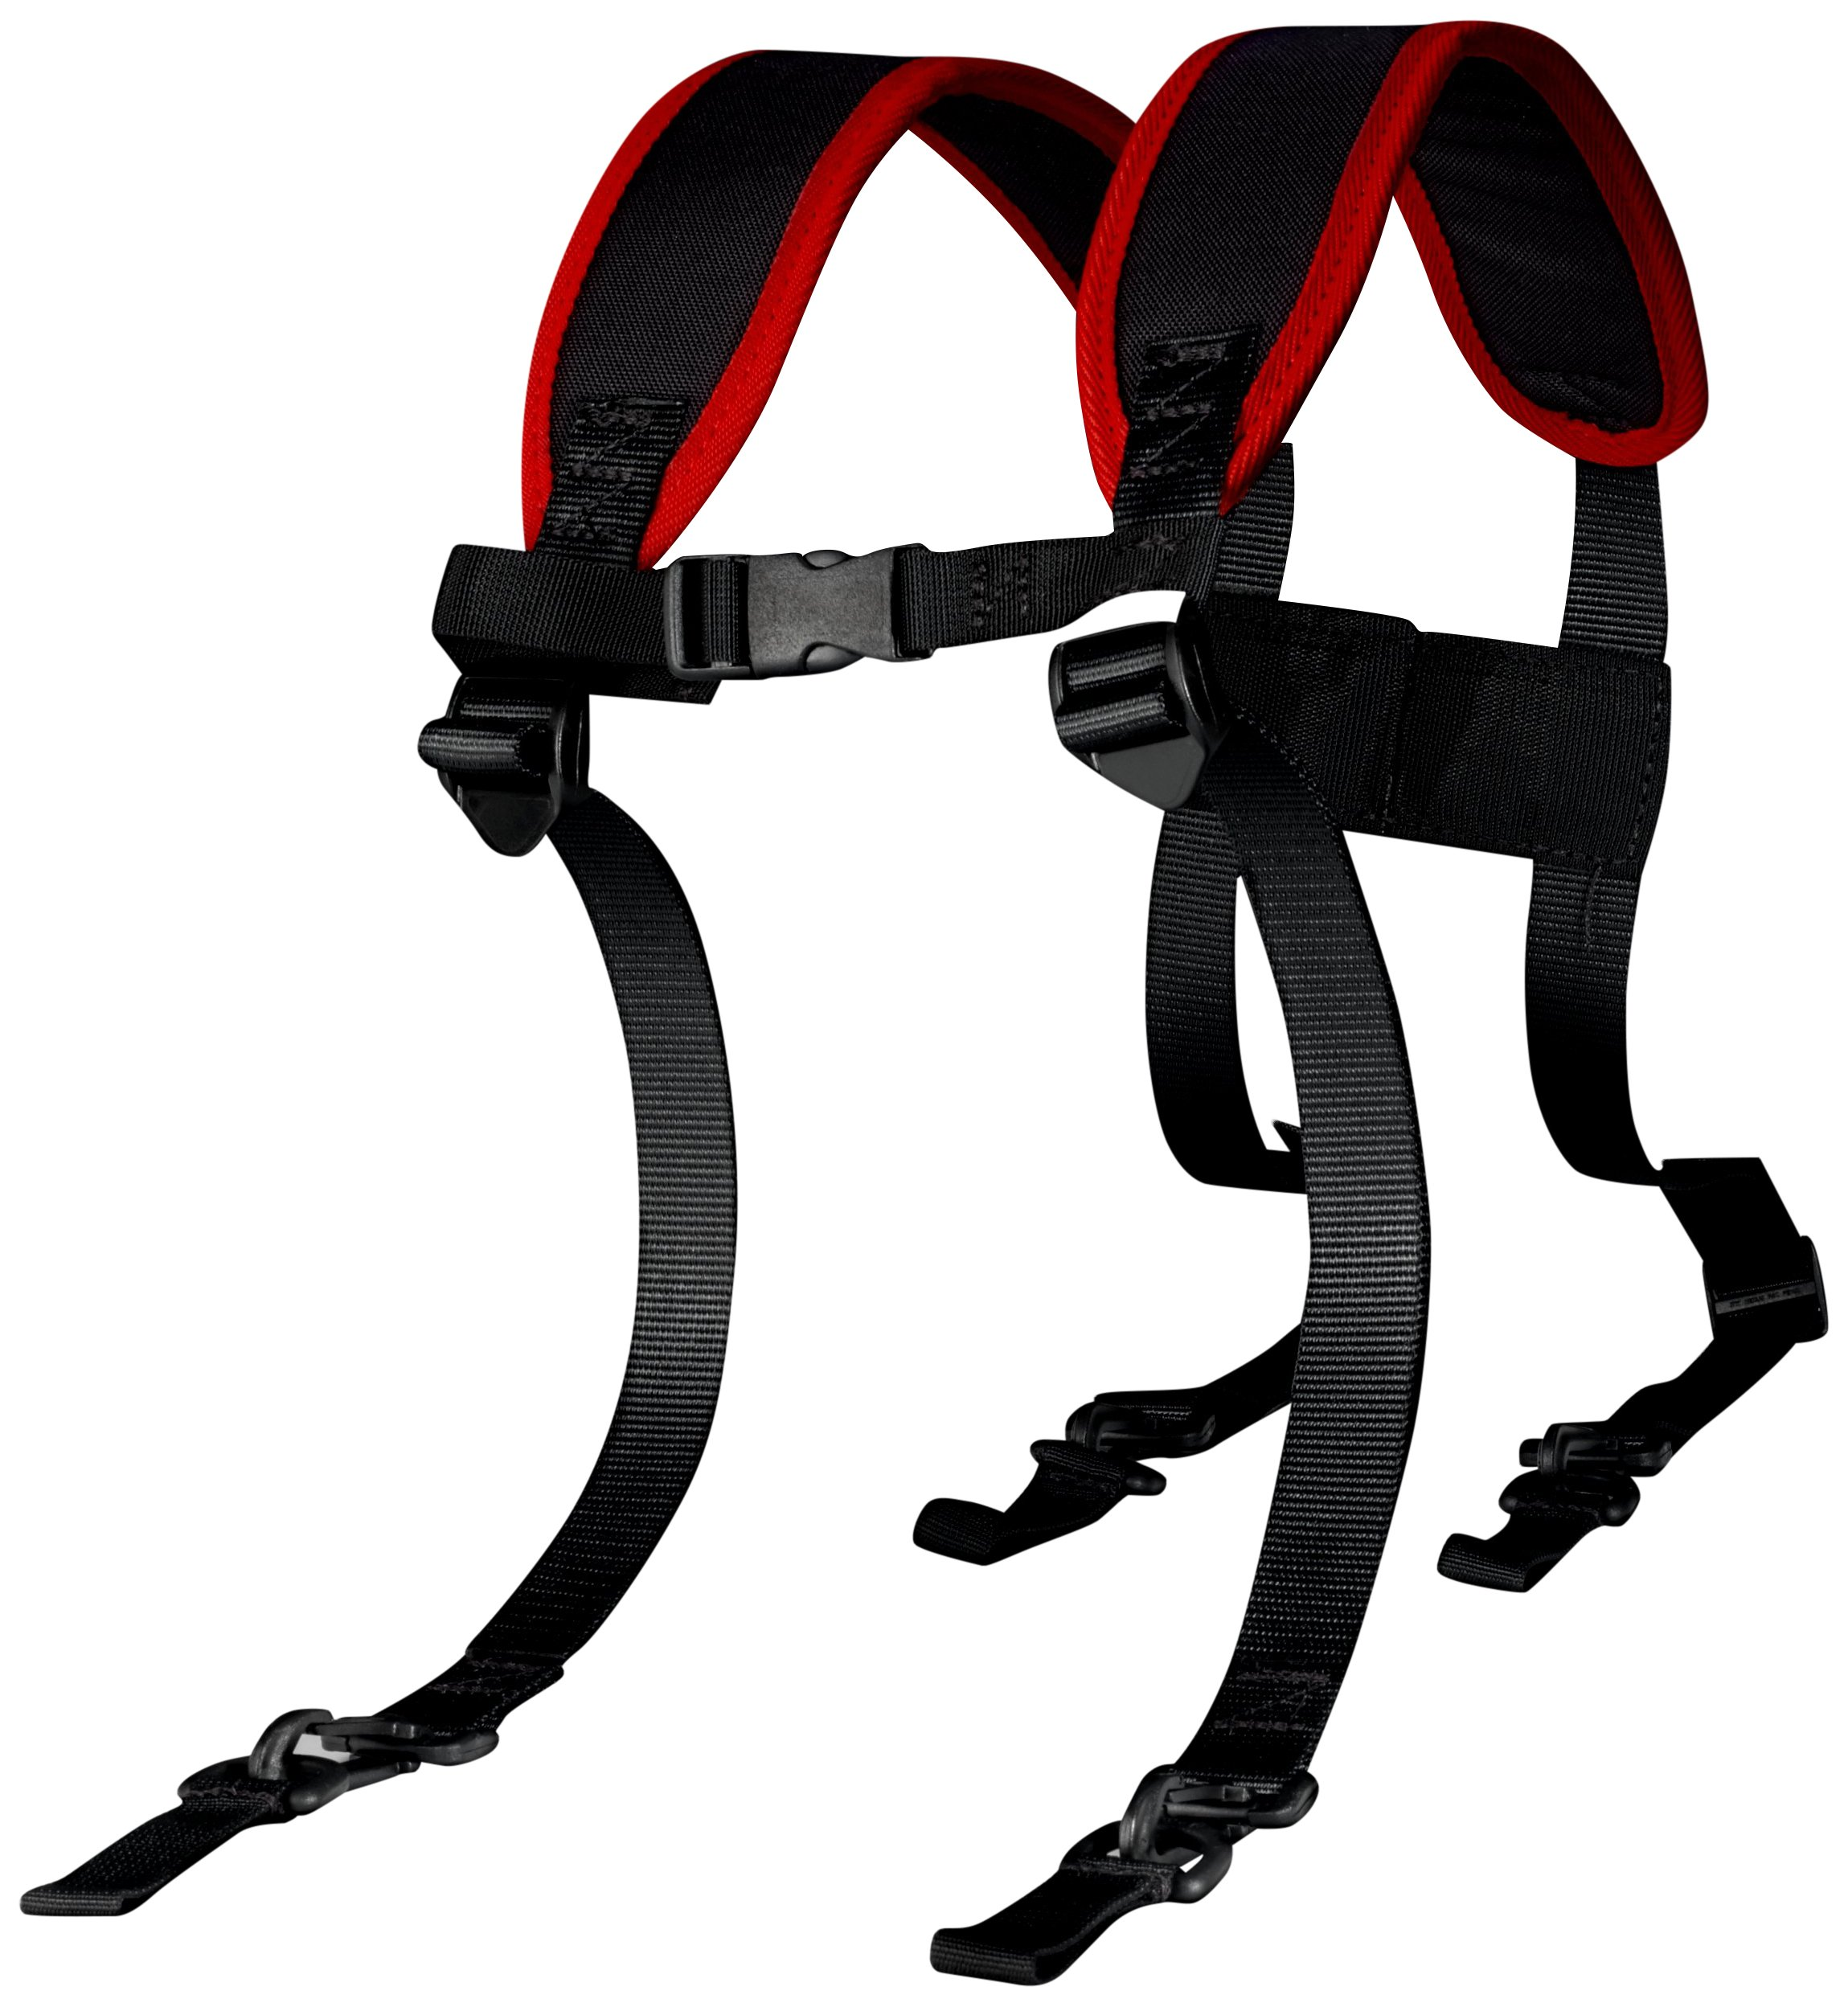 3M Versaflo 17362 Suspenders TR-329, for Versaflo TR-300 and Speed Glass TR-300-SG PAPR 1/case, Black